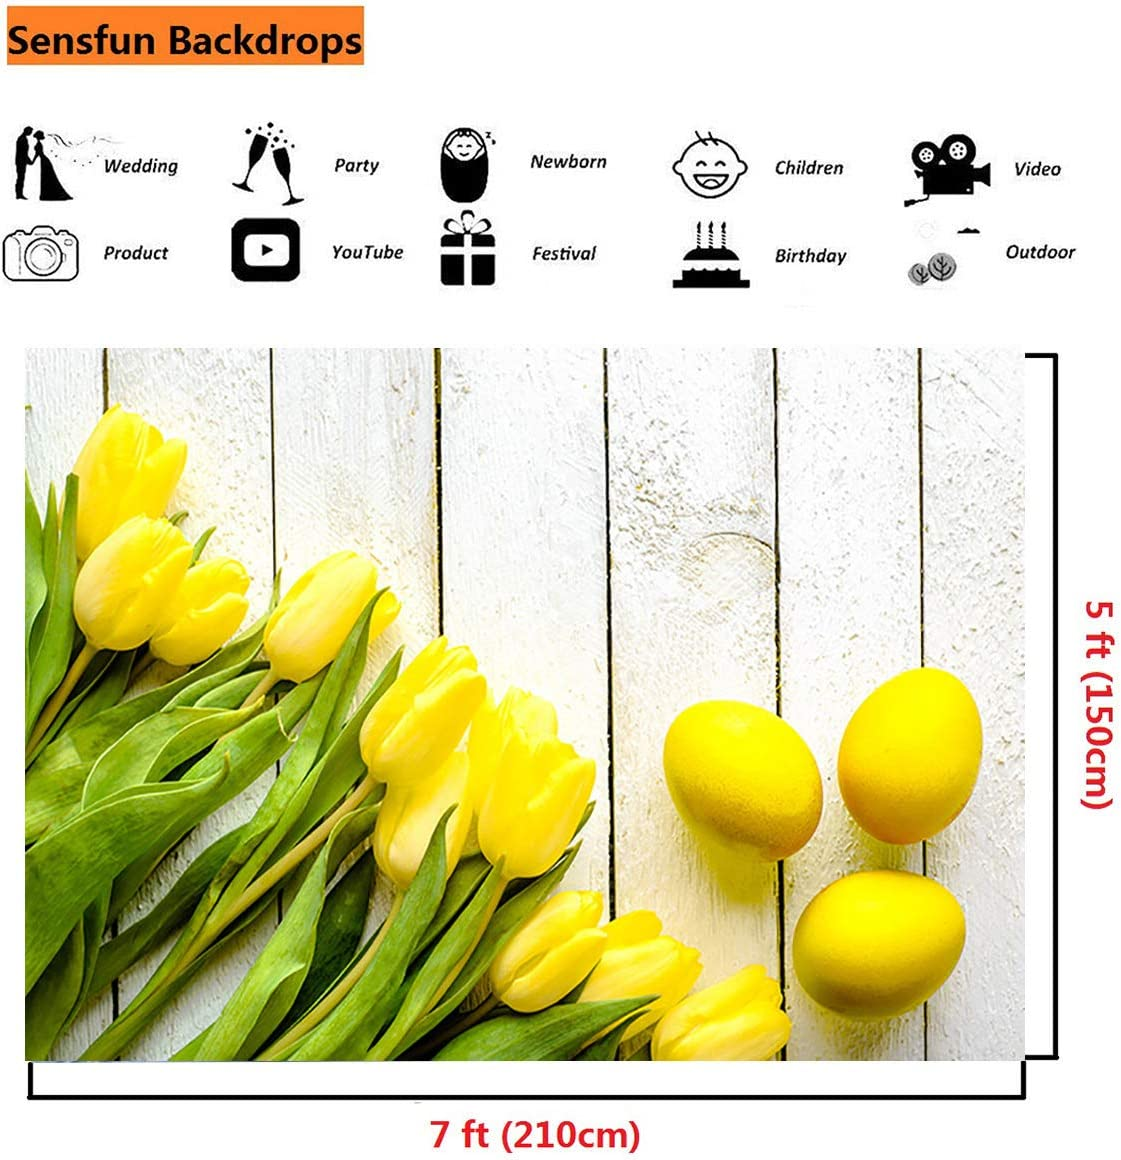 Sensfun 7x5ft Easter Eggs Photography Backdrops Spring Gold Tulips Yellow Eggs on White Wood Plank Photo Background for Baby Newborn Photobooth Banner Kids Adult Portraits Photo Studio Props WP091